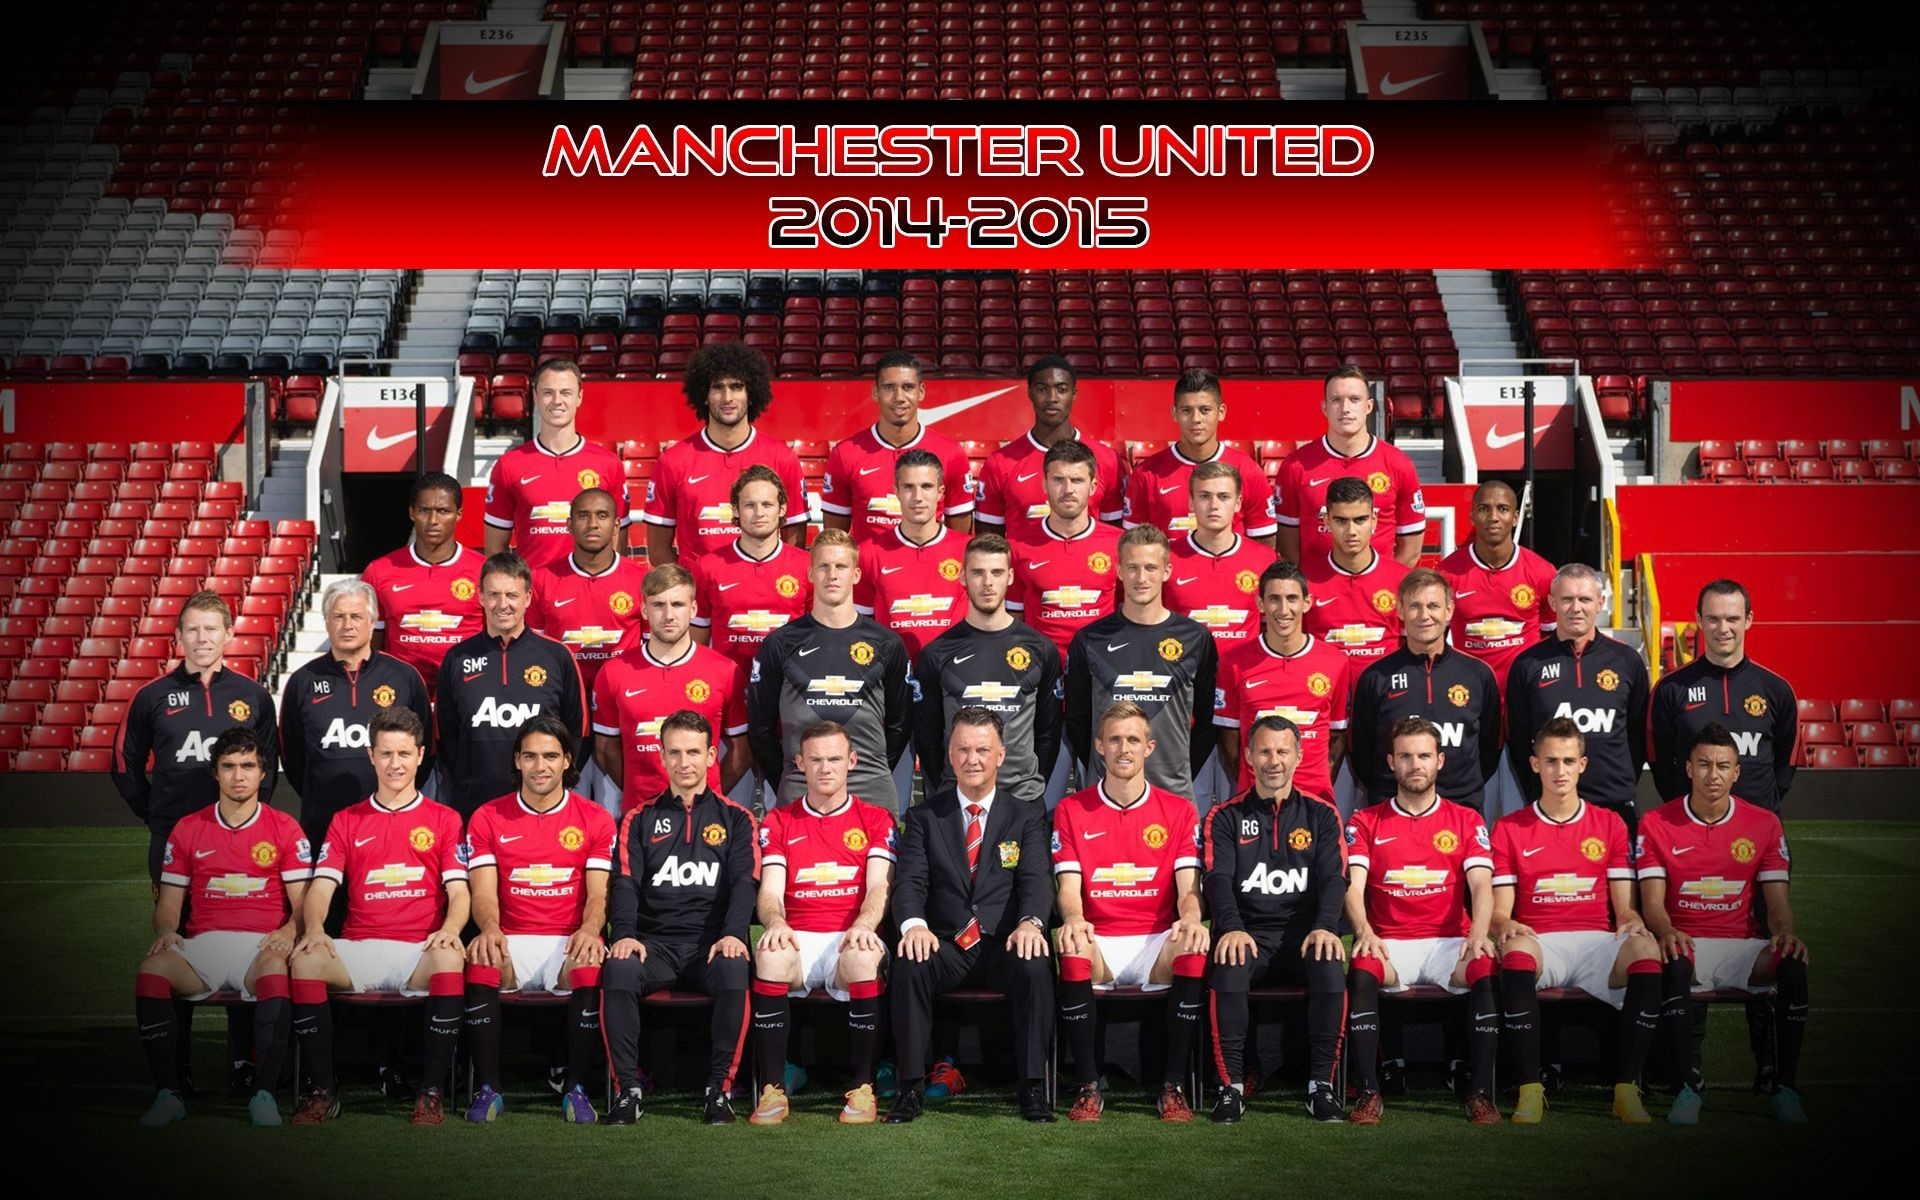 Free Download 71 Man Utd Wallpapers On Wallpaperplay 1920x1200 For Your Desktop Mobile Tablet Explore 31 Iphone Jersey Third Manchester United 2019 2020 Wallpapers Iphone Jersey Third Manchester United